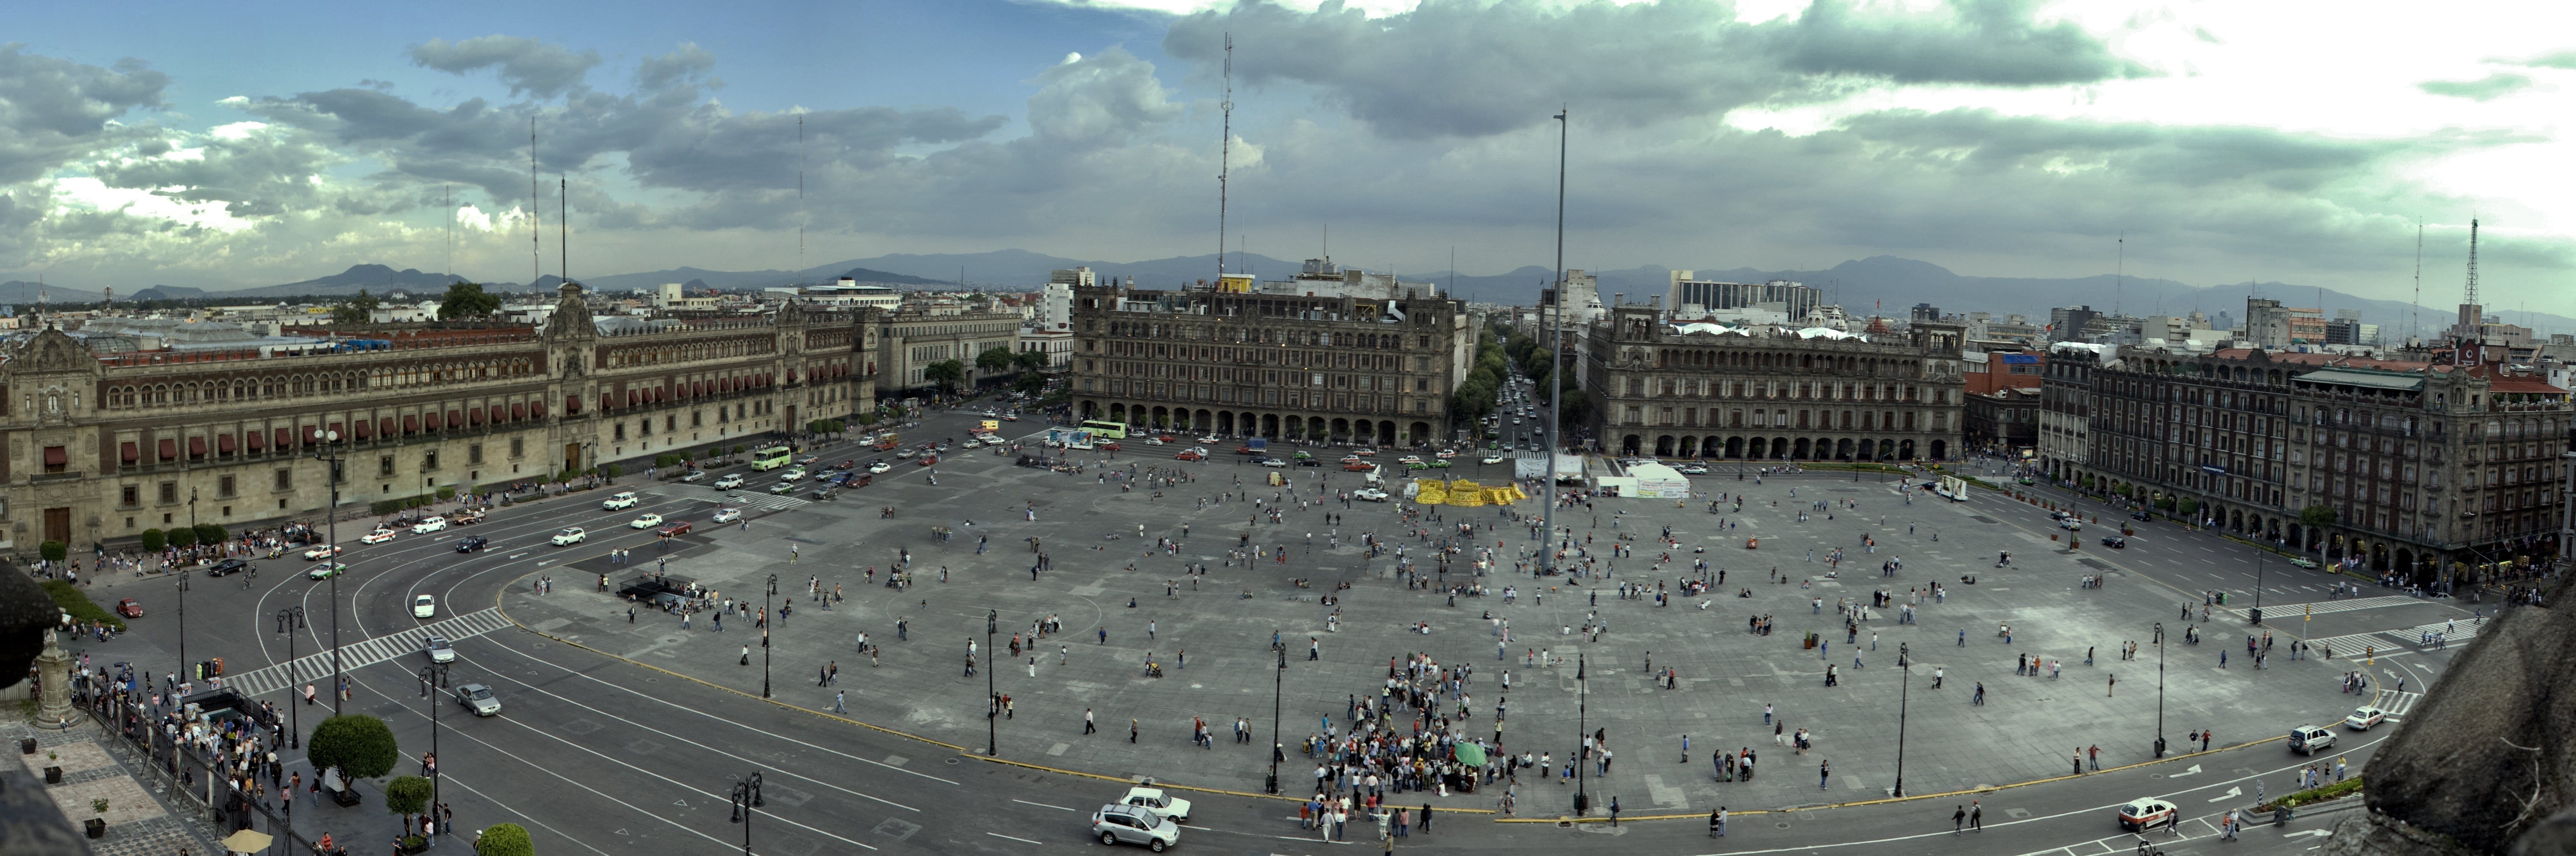 TripAdvisor reviews in Mexico City rave about El Zocalo